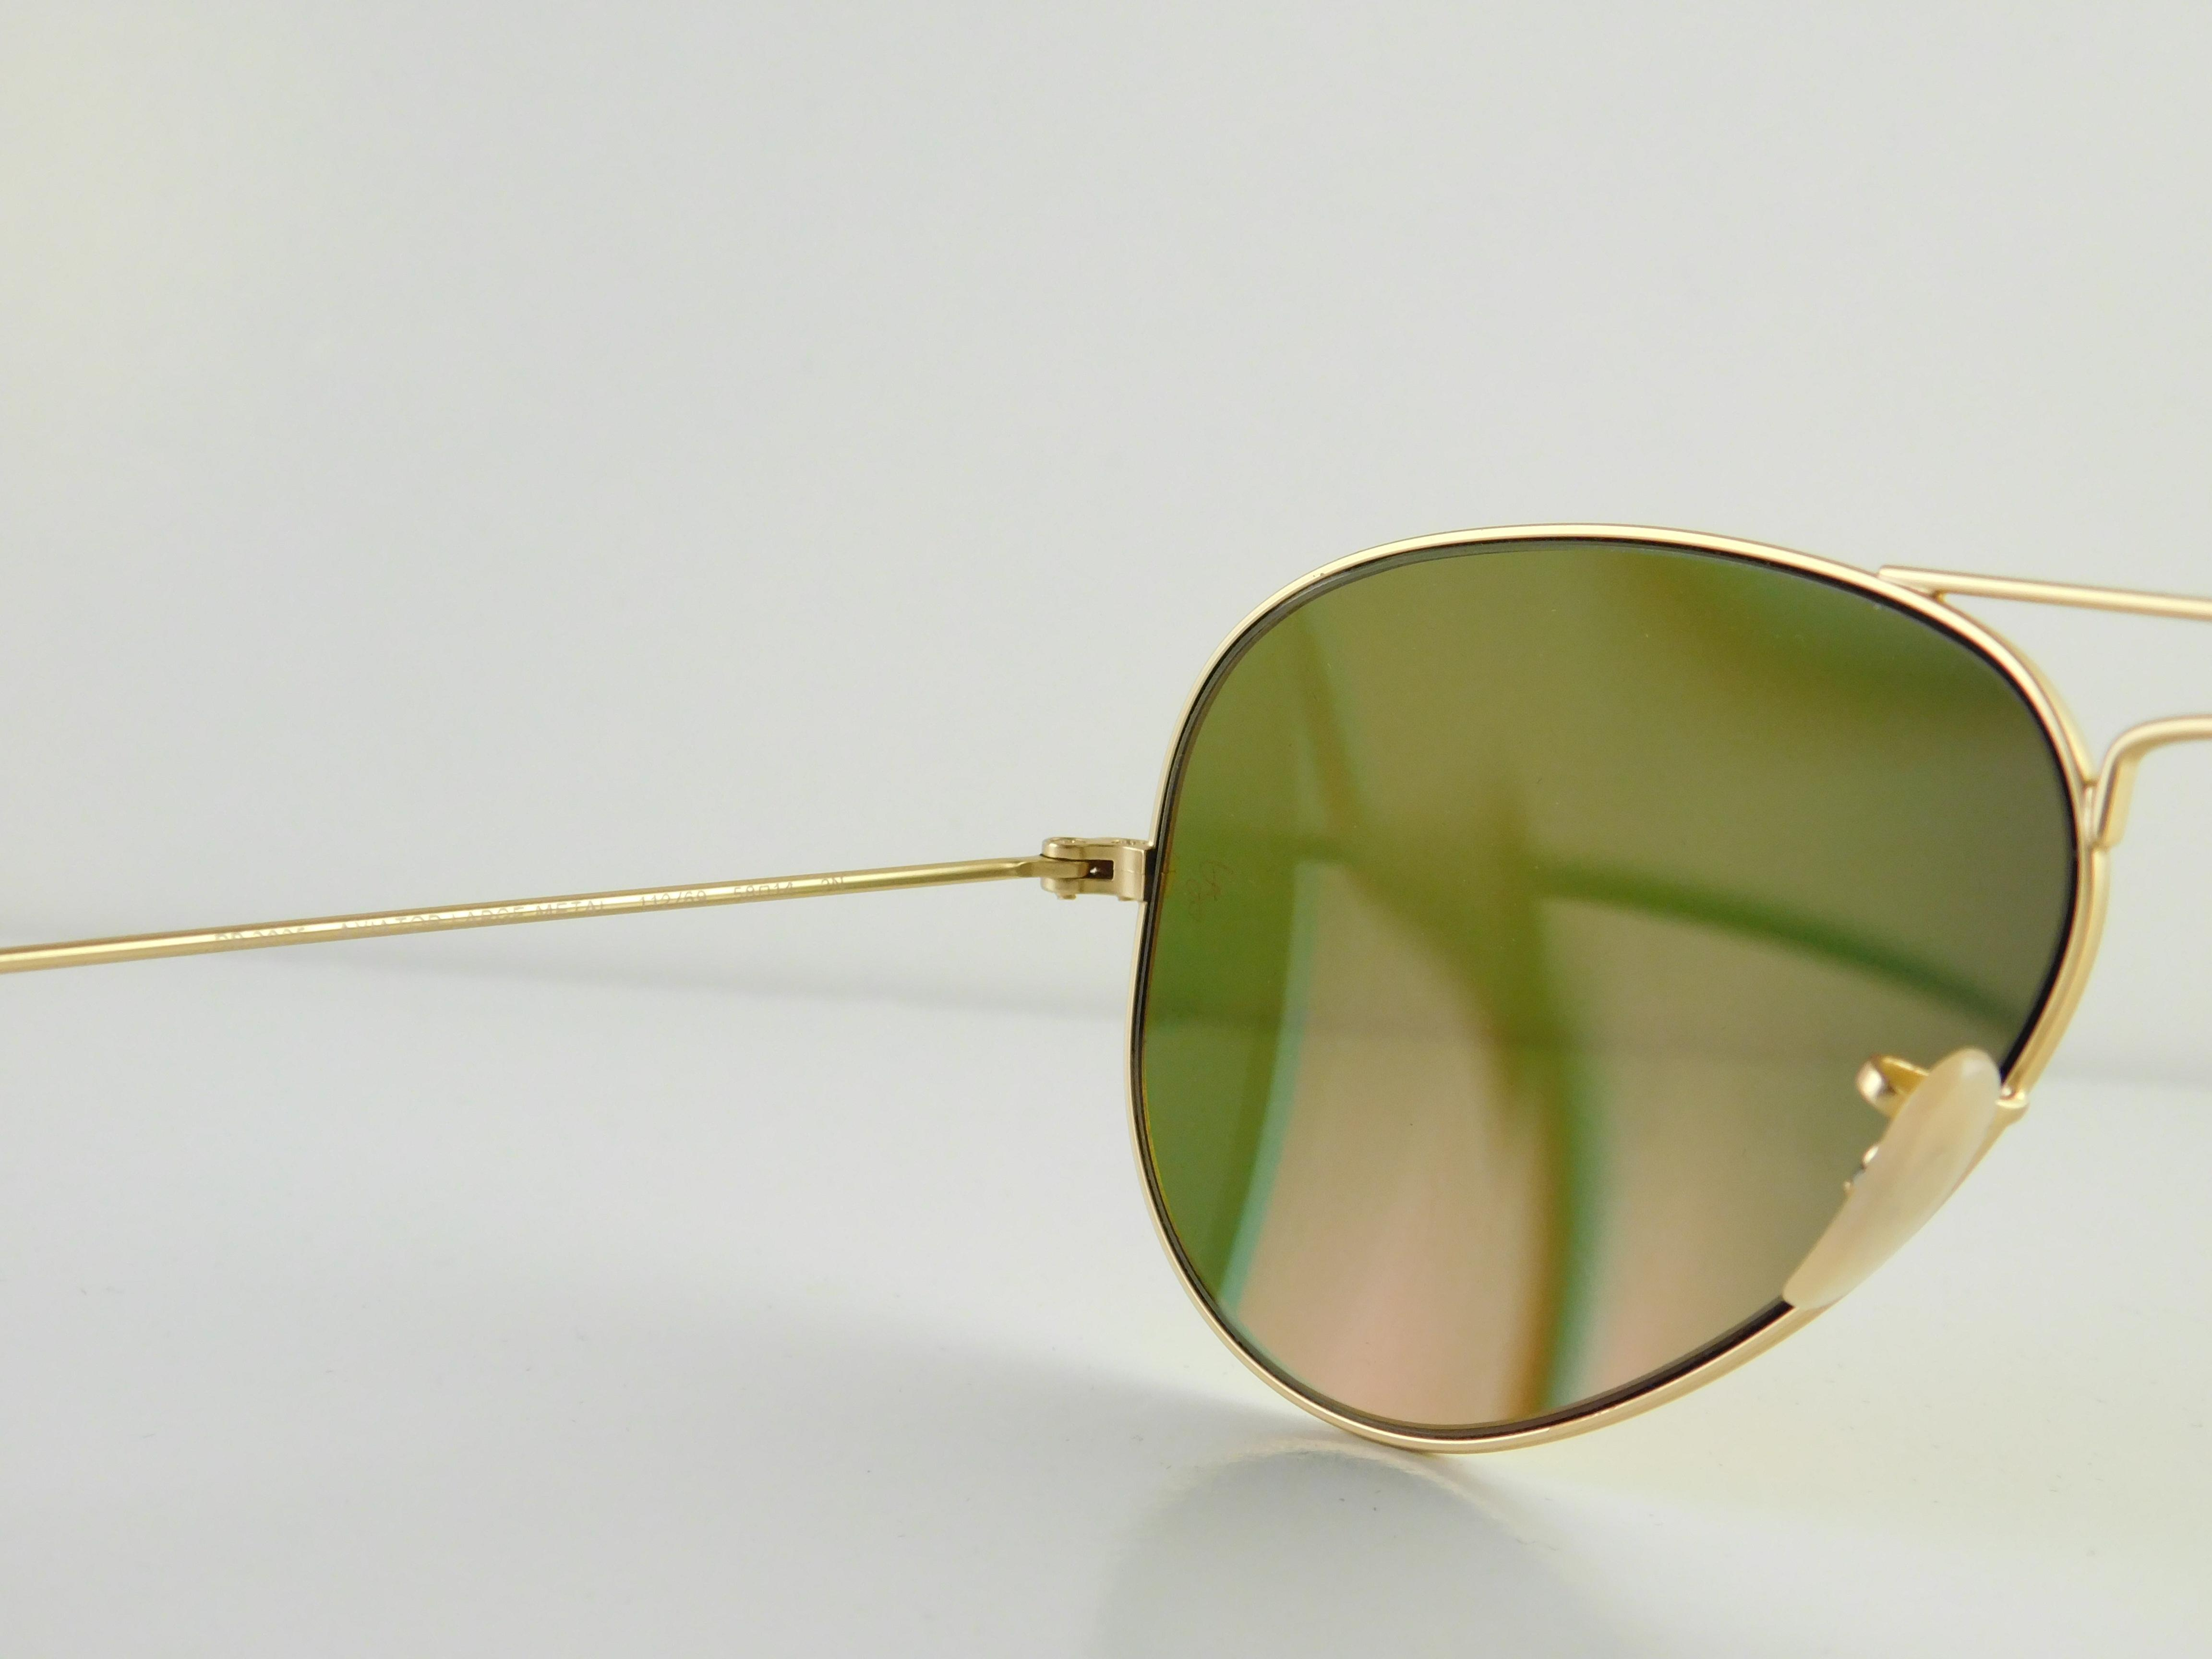 d93e7c9b92cdf ... ireland ray ban matte gold frame reflective red mirror lens gently used  3025 112 69 aviator